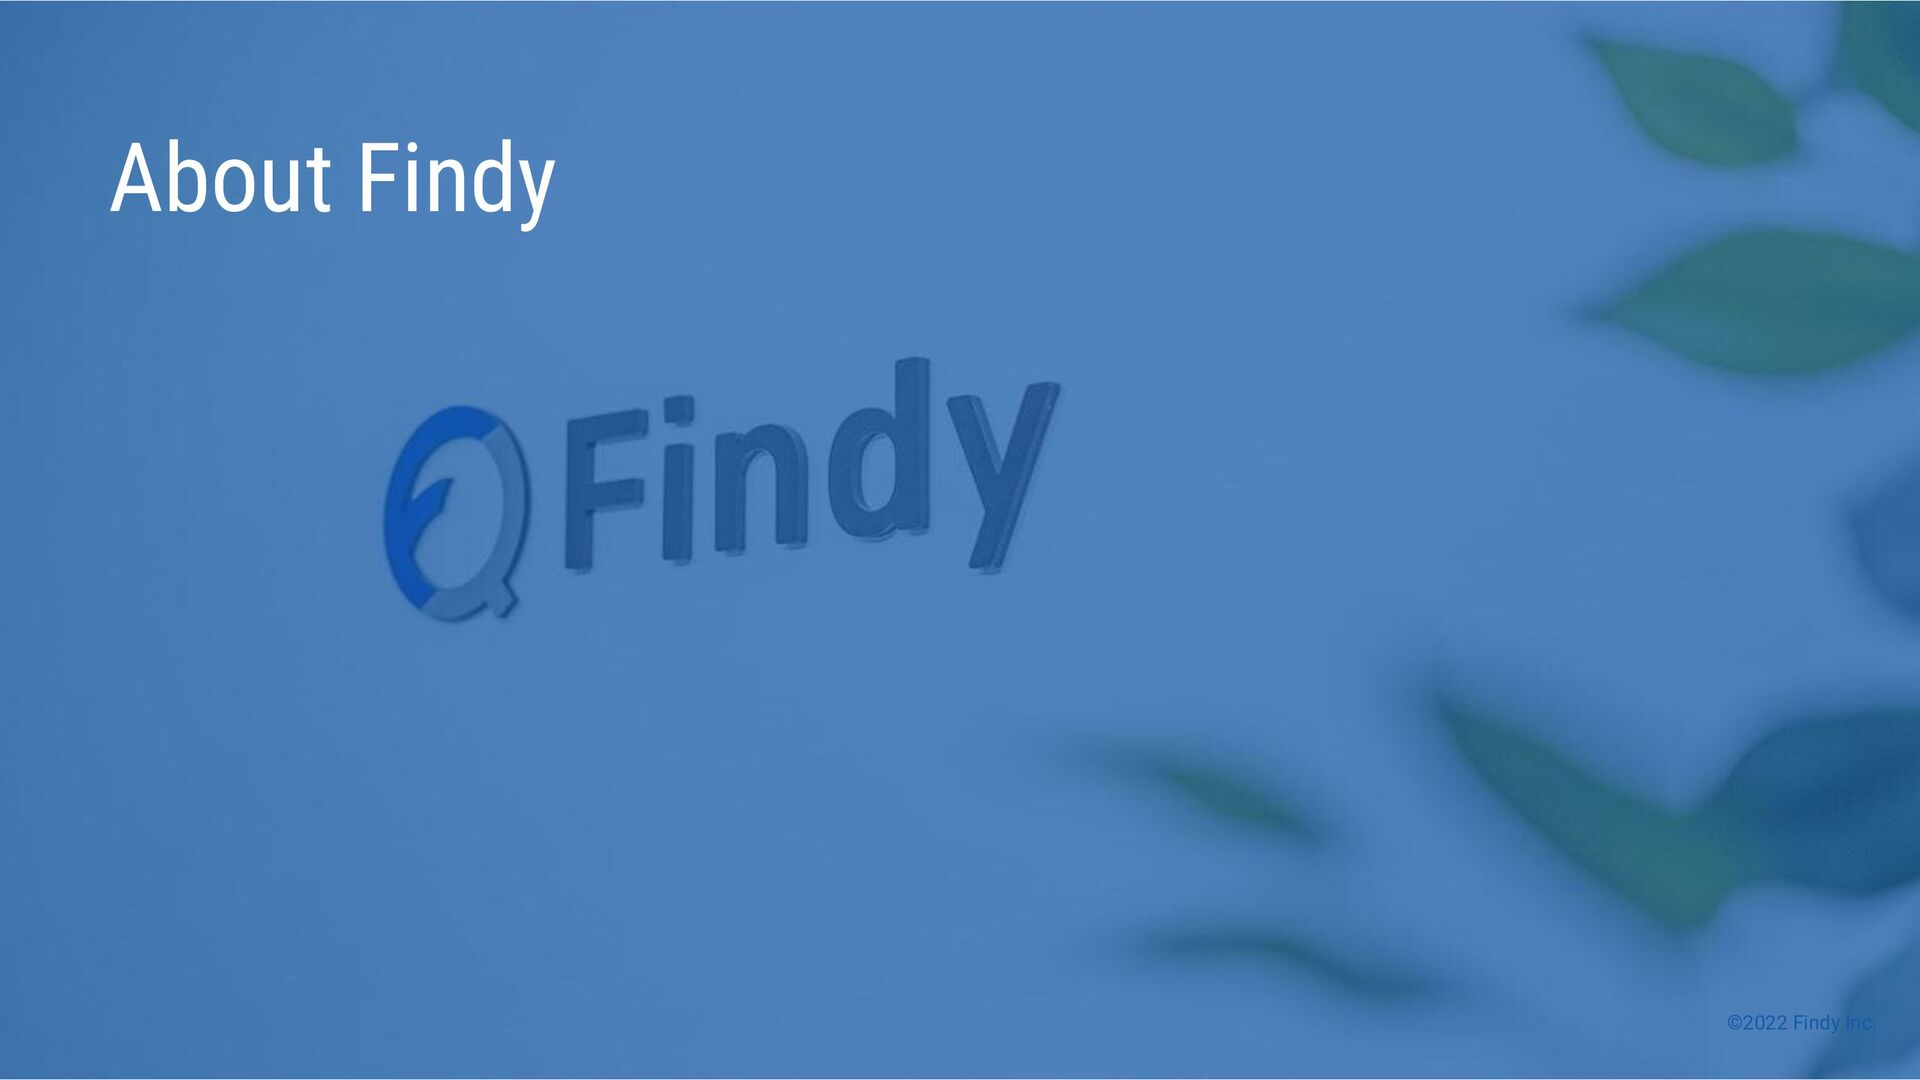 ©2021 Findy Inc. About Findy